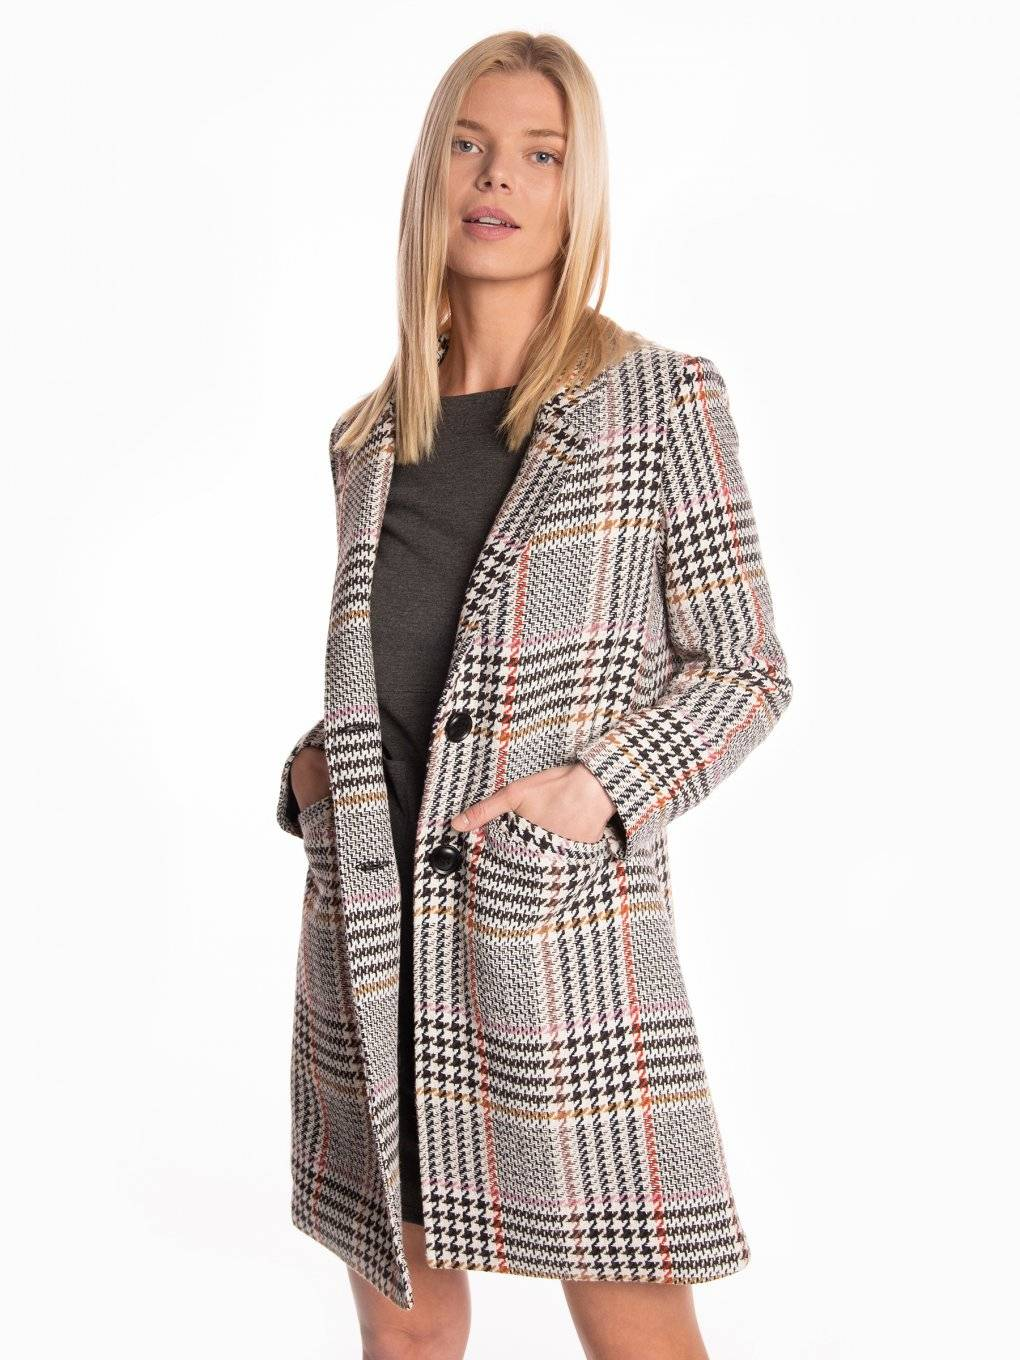 Plaid sinle breasted coat